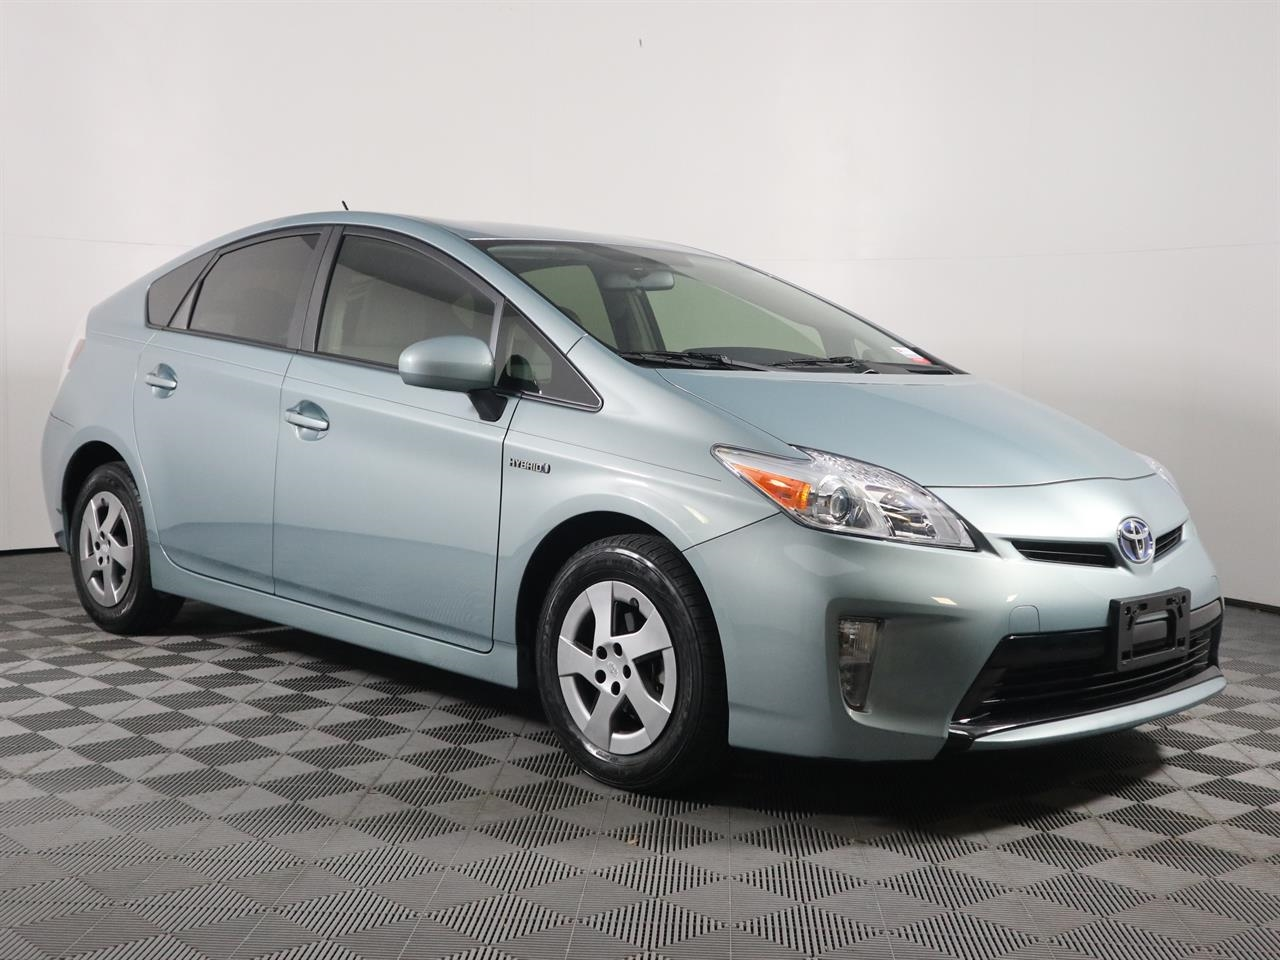 2015 TOYOTA PRIUS 5dr HB Two 0 miles 2 12V DC Power Outlets 5 Person Seating Capacity 60-40 Fol